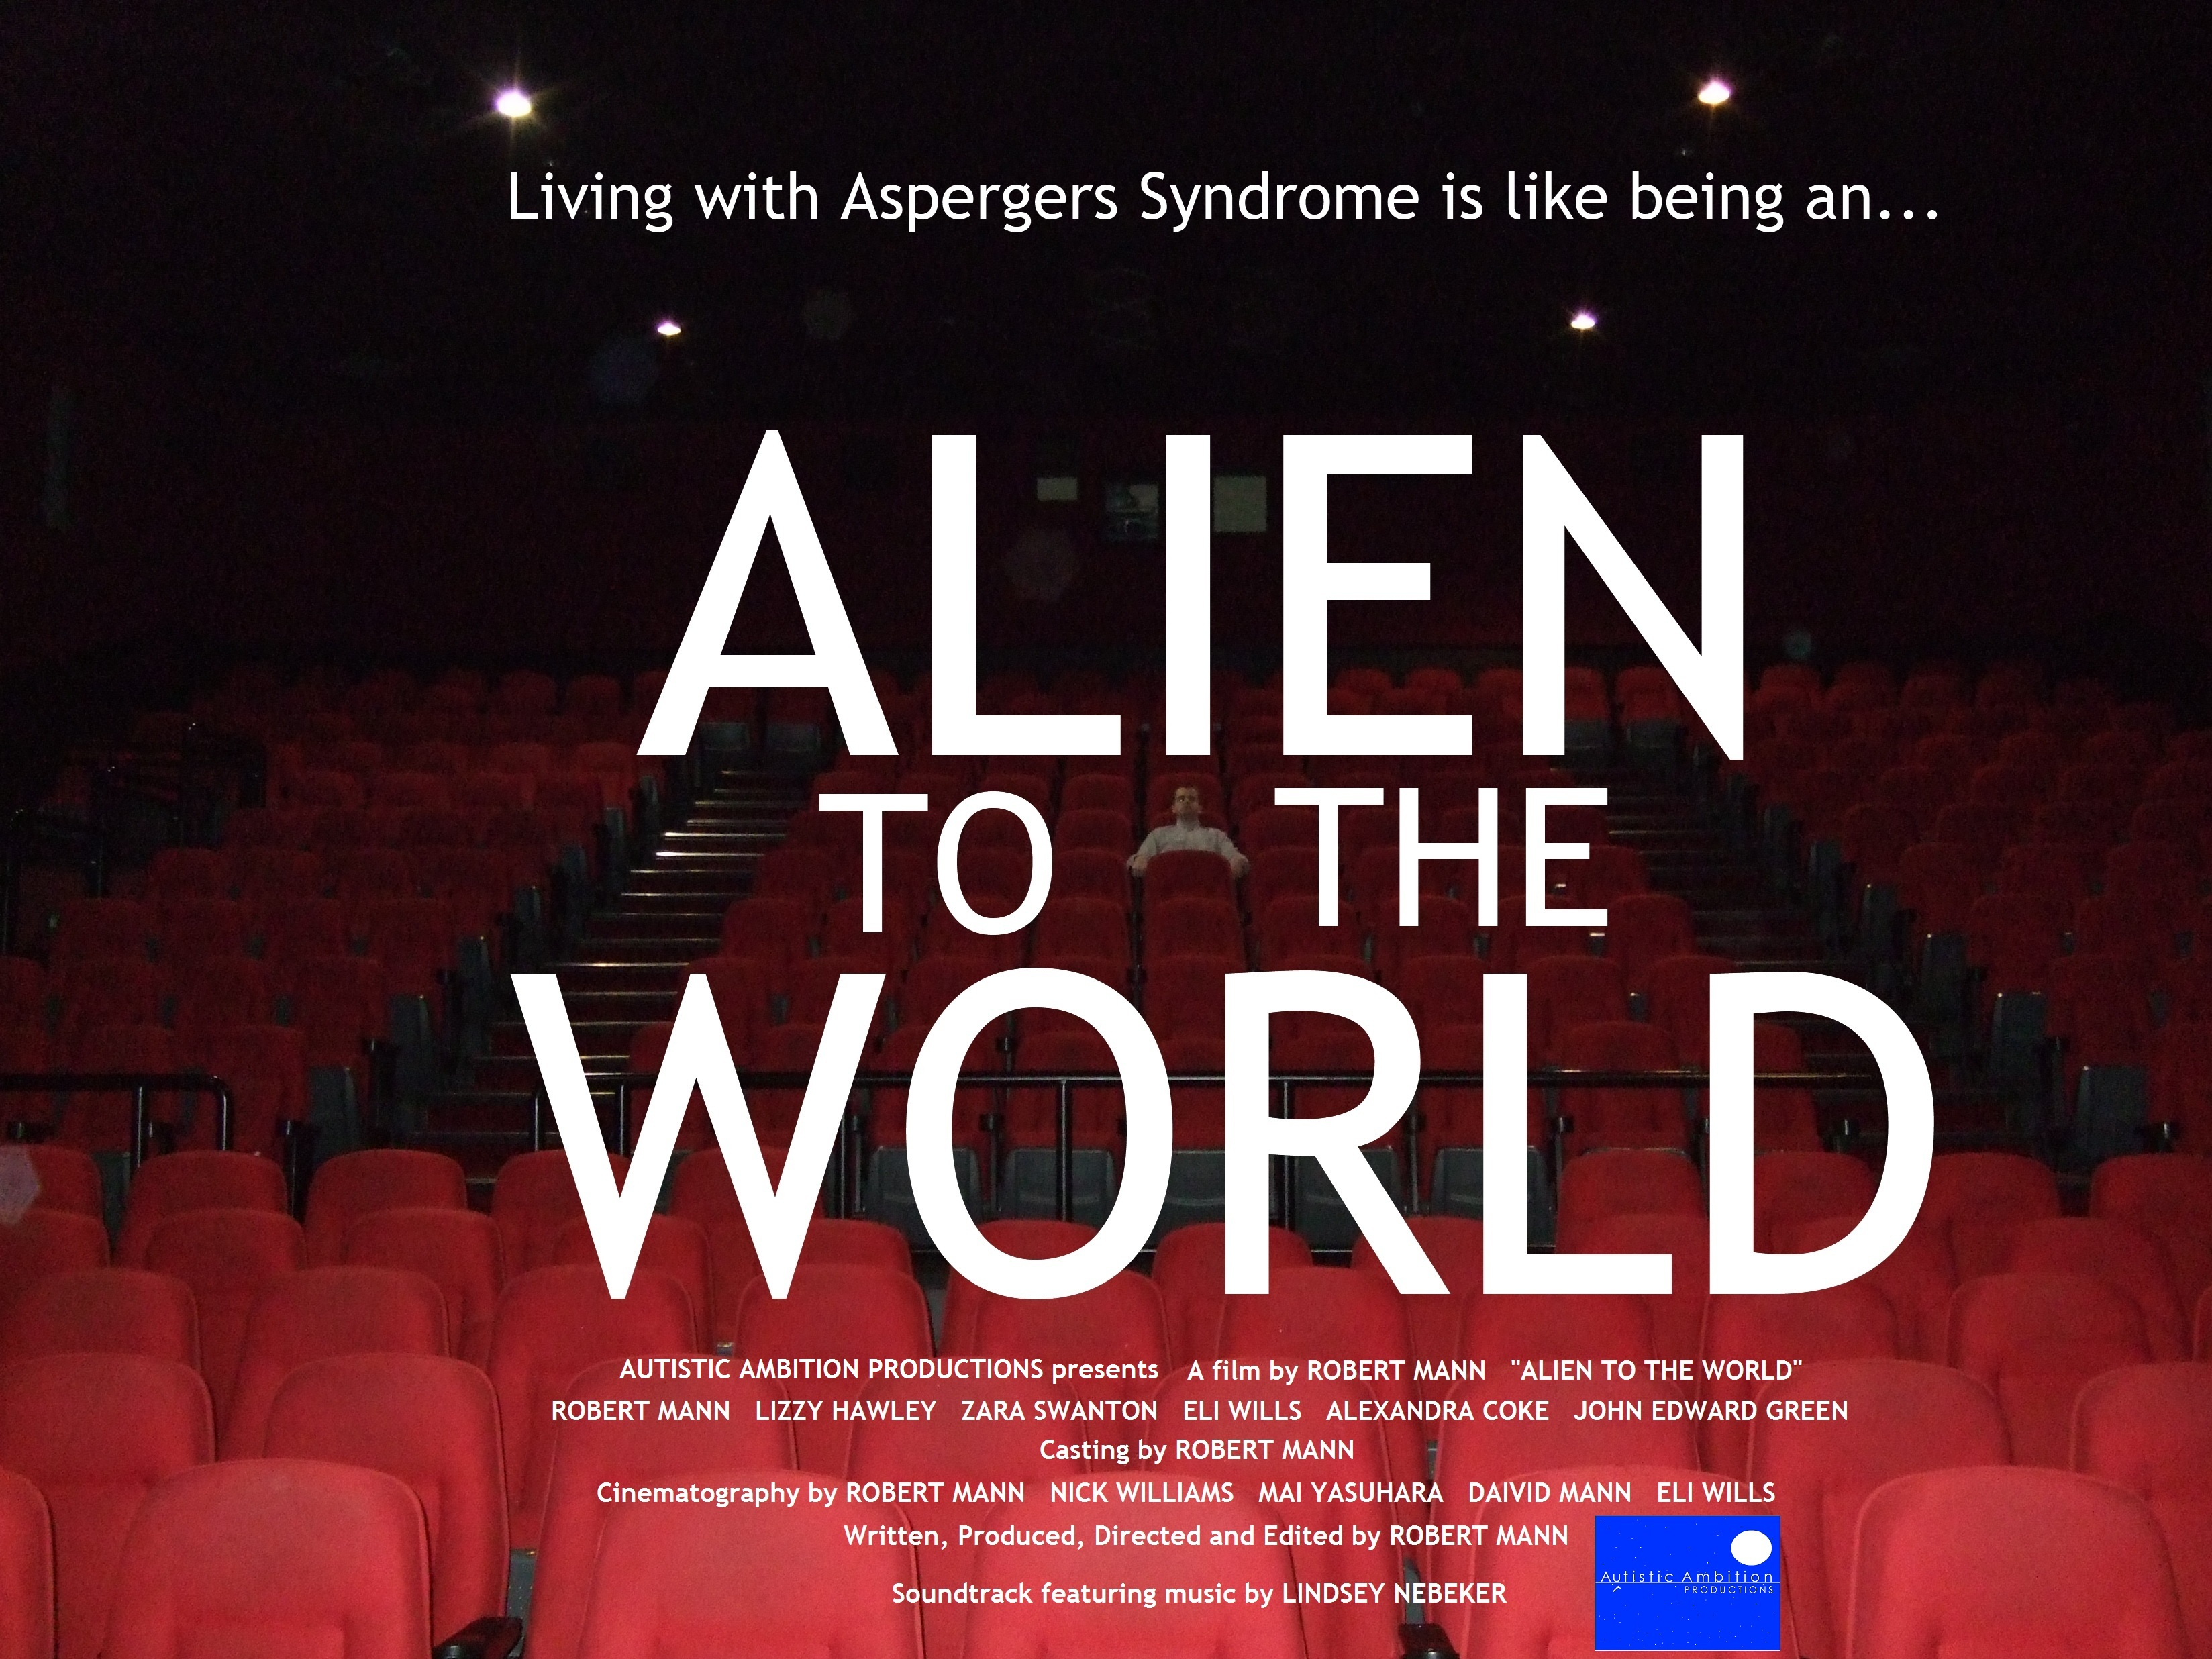 """Alien to the World"": A Filmaker's Personal Perspective on Asperger's Syndrome"